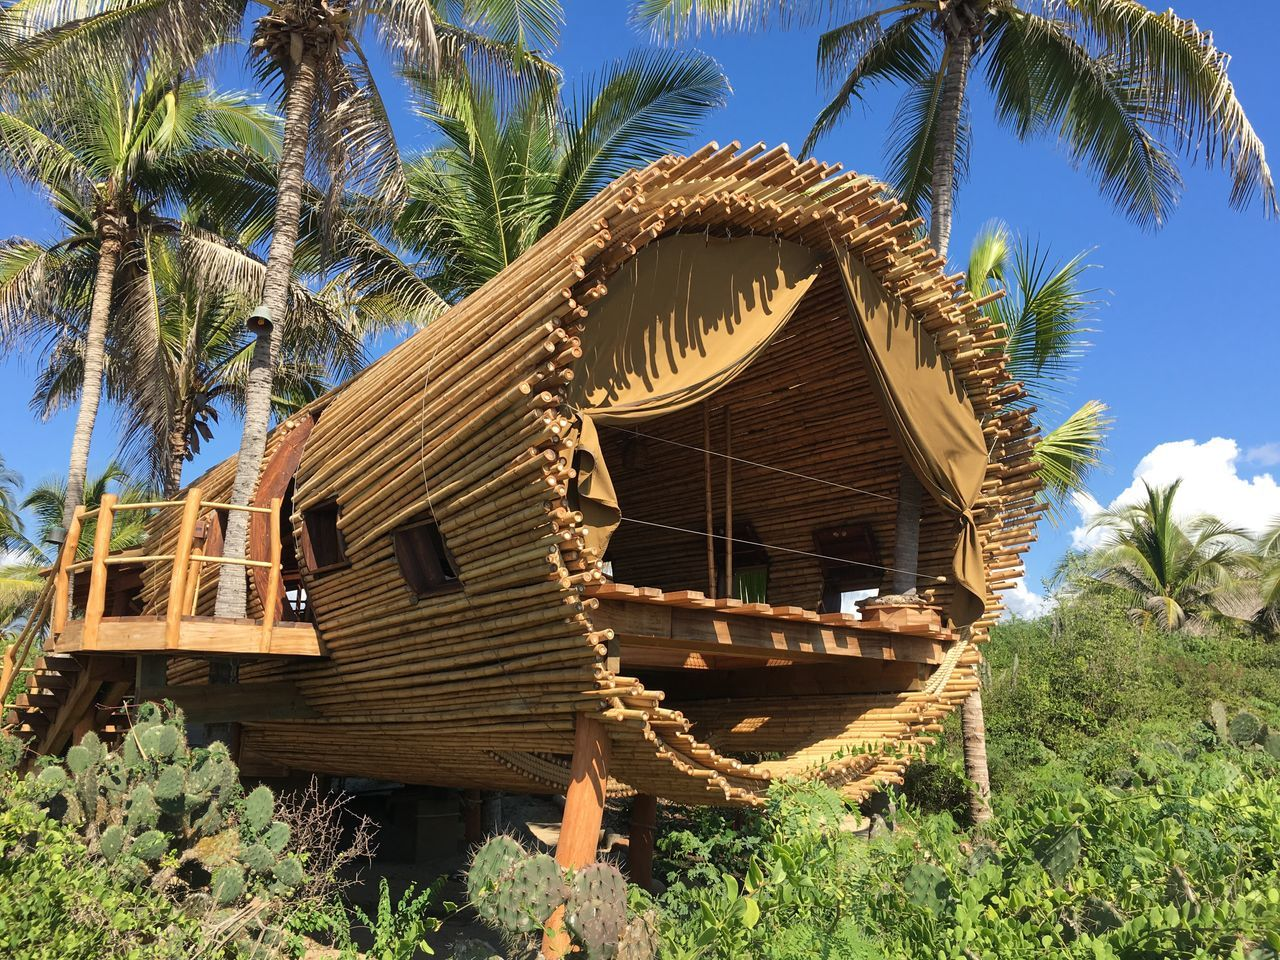 Treehouse Treehouseview Zihuatanejo Beachphotography Playa #beach Beach Photography Paradise Vacation Playa Ocean View Beach Mexico Fairytale  Vacations Beach Life Palm Trees Sun Eco Ecoresort Ecofriendly Ecosystem  Ecologic Ecological Ecology Ecol The Architect - 2017 EyeEm Awards The Great Outdoors - 2017 EyeEm Awards